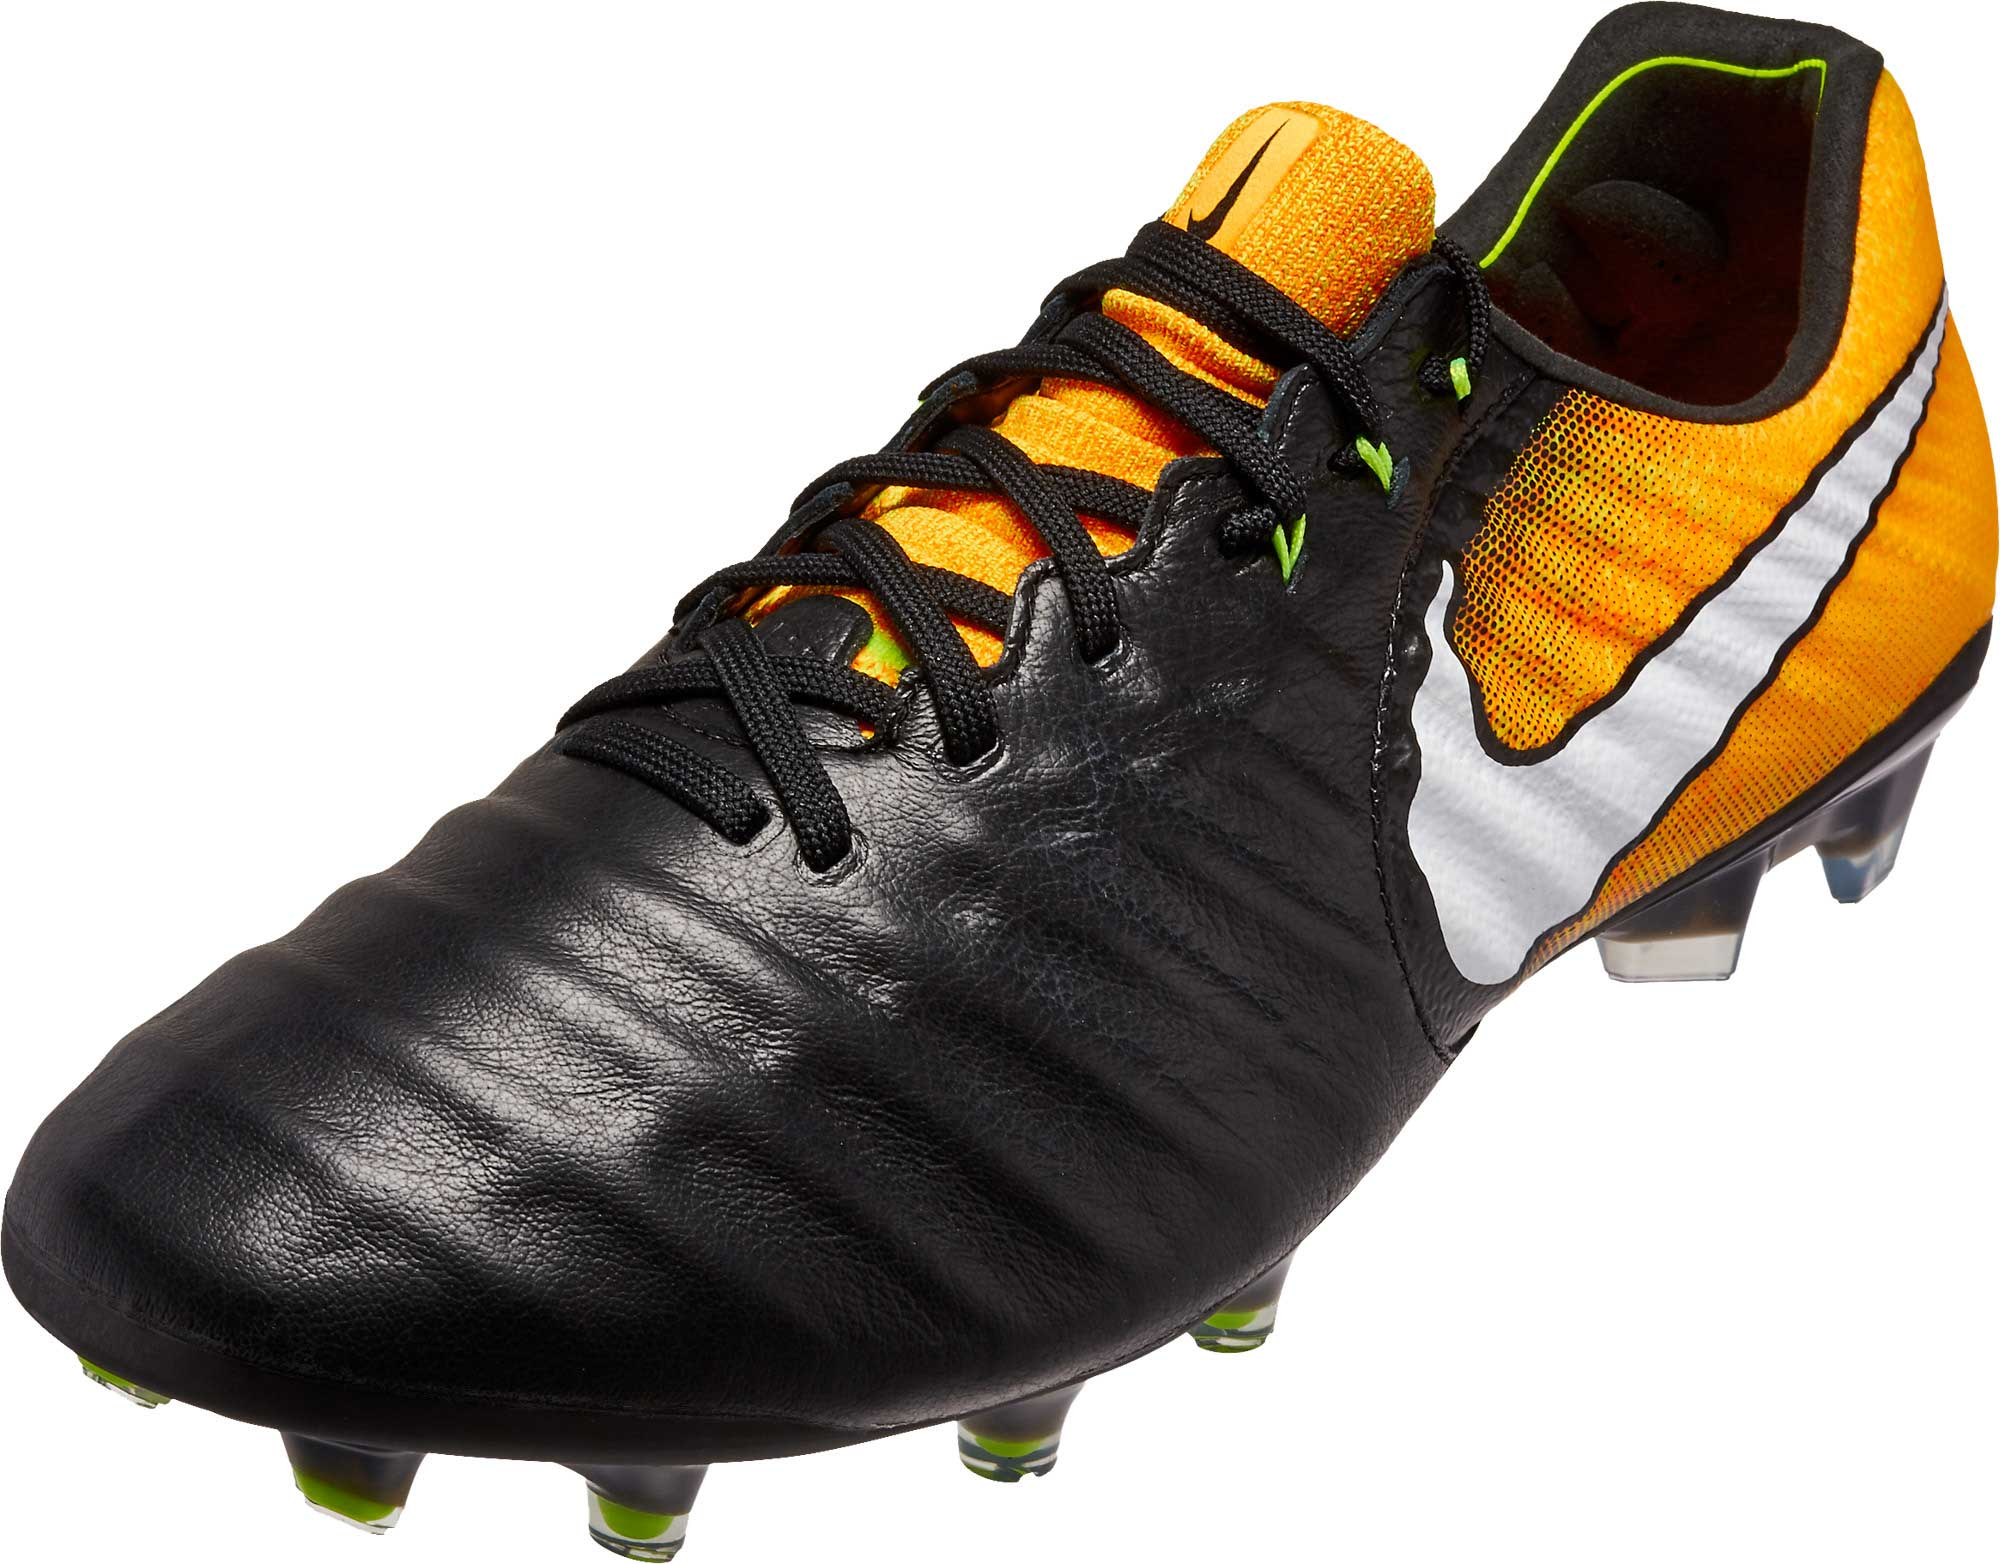 outlet store 9b8af 13b11 Nike Tiempo Legend VII FG – Black/White/Laser Orange/Volt